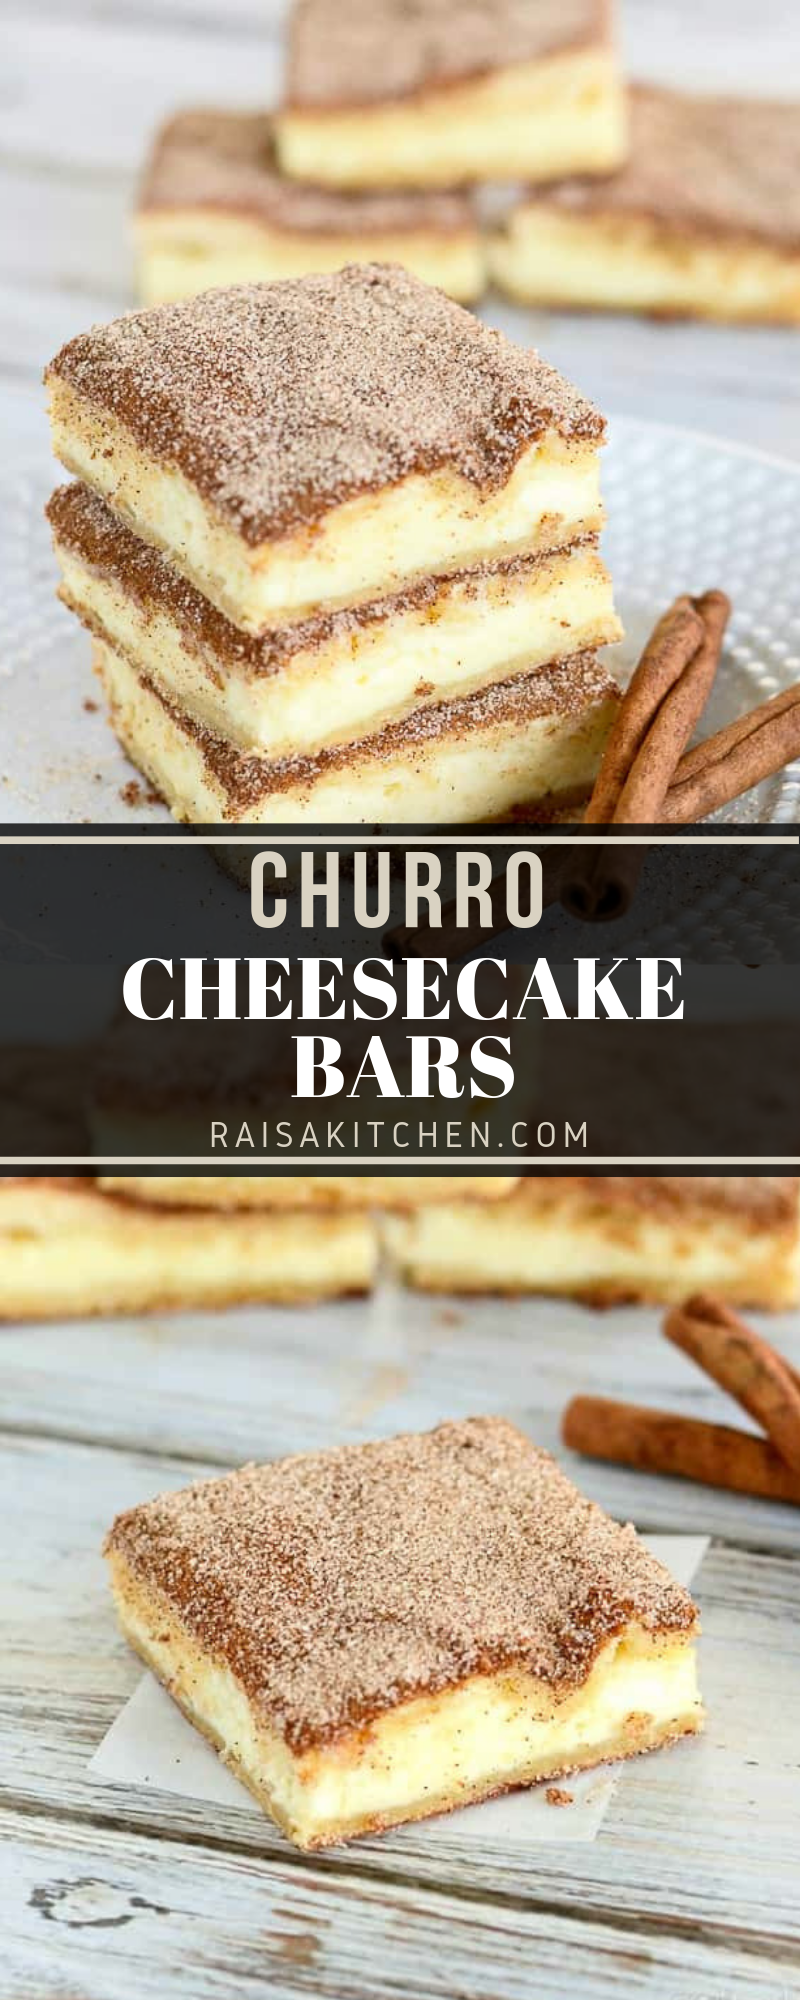 CHURRO CHEESECAKE BARS #churrocheesecake The crunchy cinnamony goodness of a churro filled with a tangy cream cheese filling. The best of two desserts rolled into one! #churrocheesecakebars